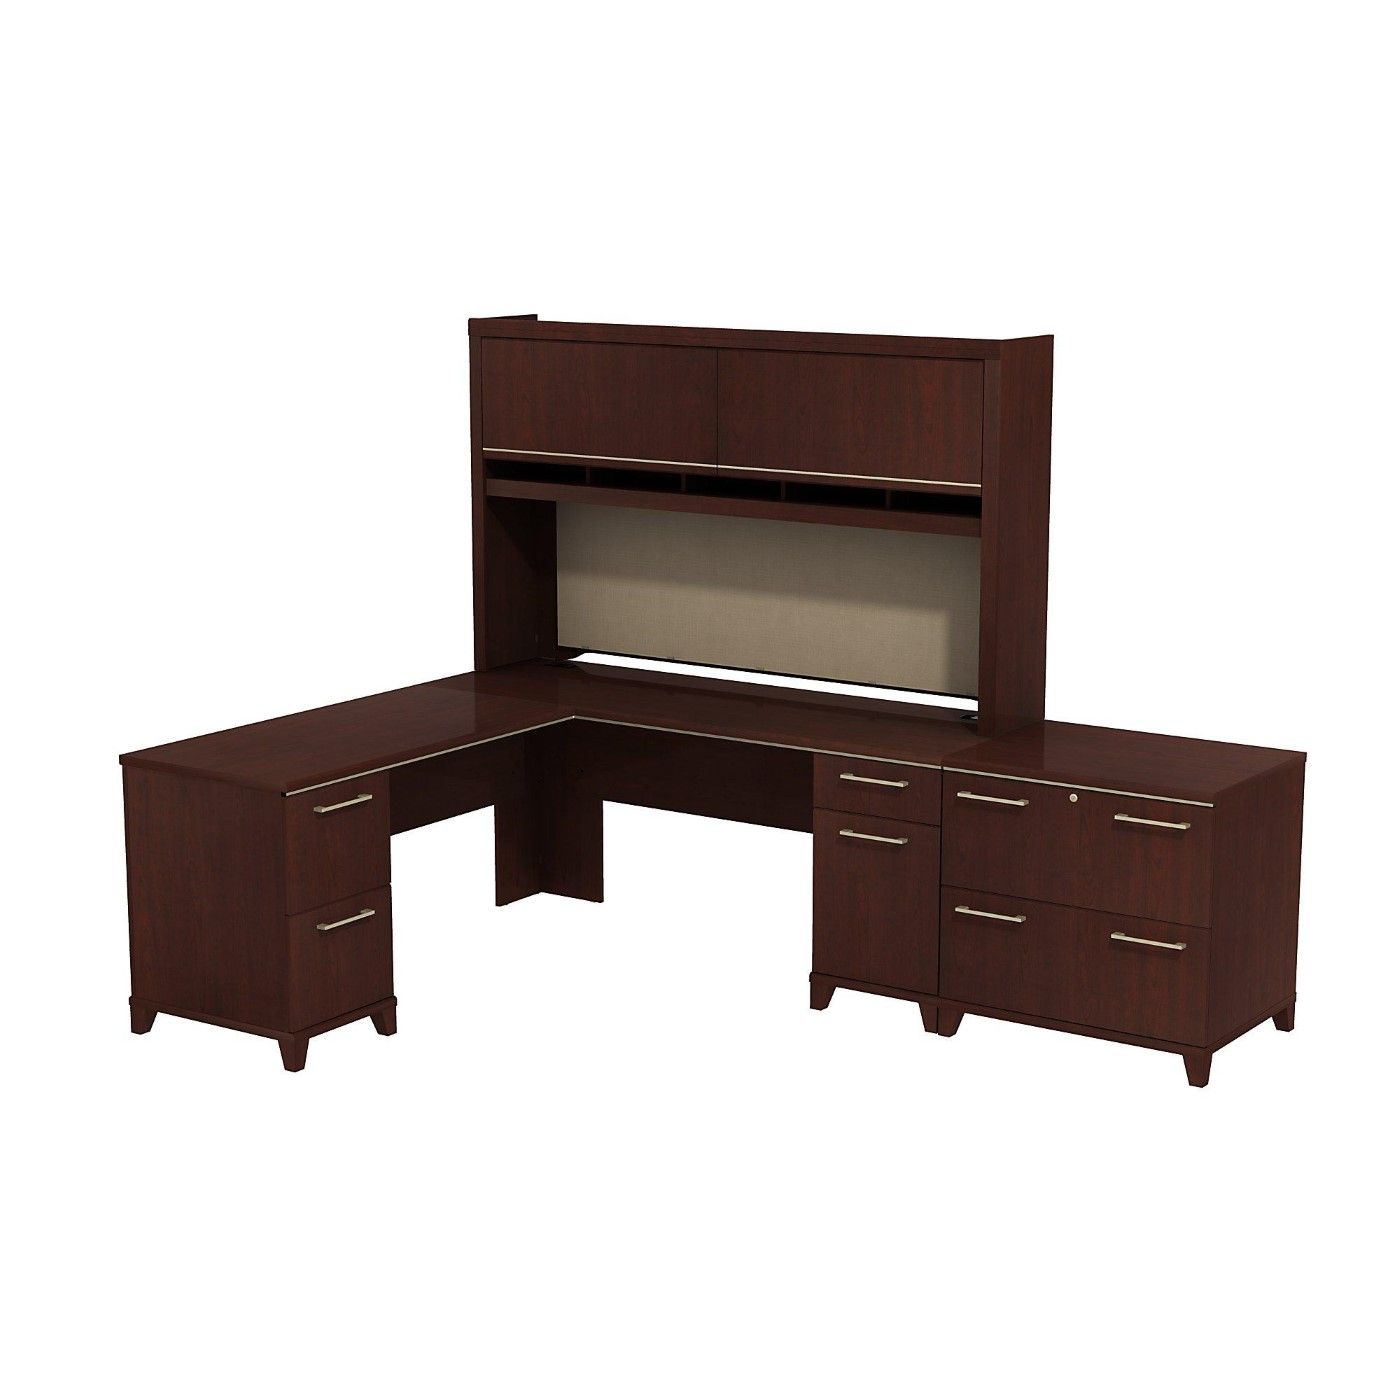 BUSH BUSINESS FURNITURE ENTERPRISE 72W X 72D L SHAPED DESK WITH HUTCH AND LATERAL FILE CABINET #EH-ENT003CS. FREE SHIPPING</font></b></font></b>&#x1F384<font color=red><b>ERGONOMICHOME HOLIDAY SALE - ENDS DEC. 17, 2019</b></font>&#x1F384